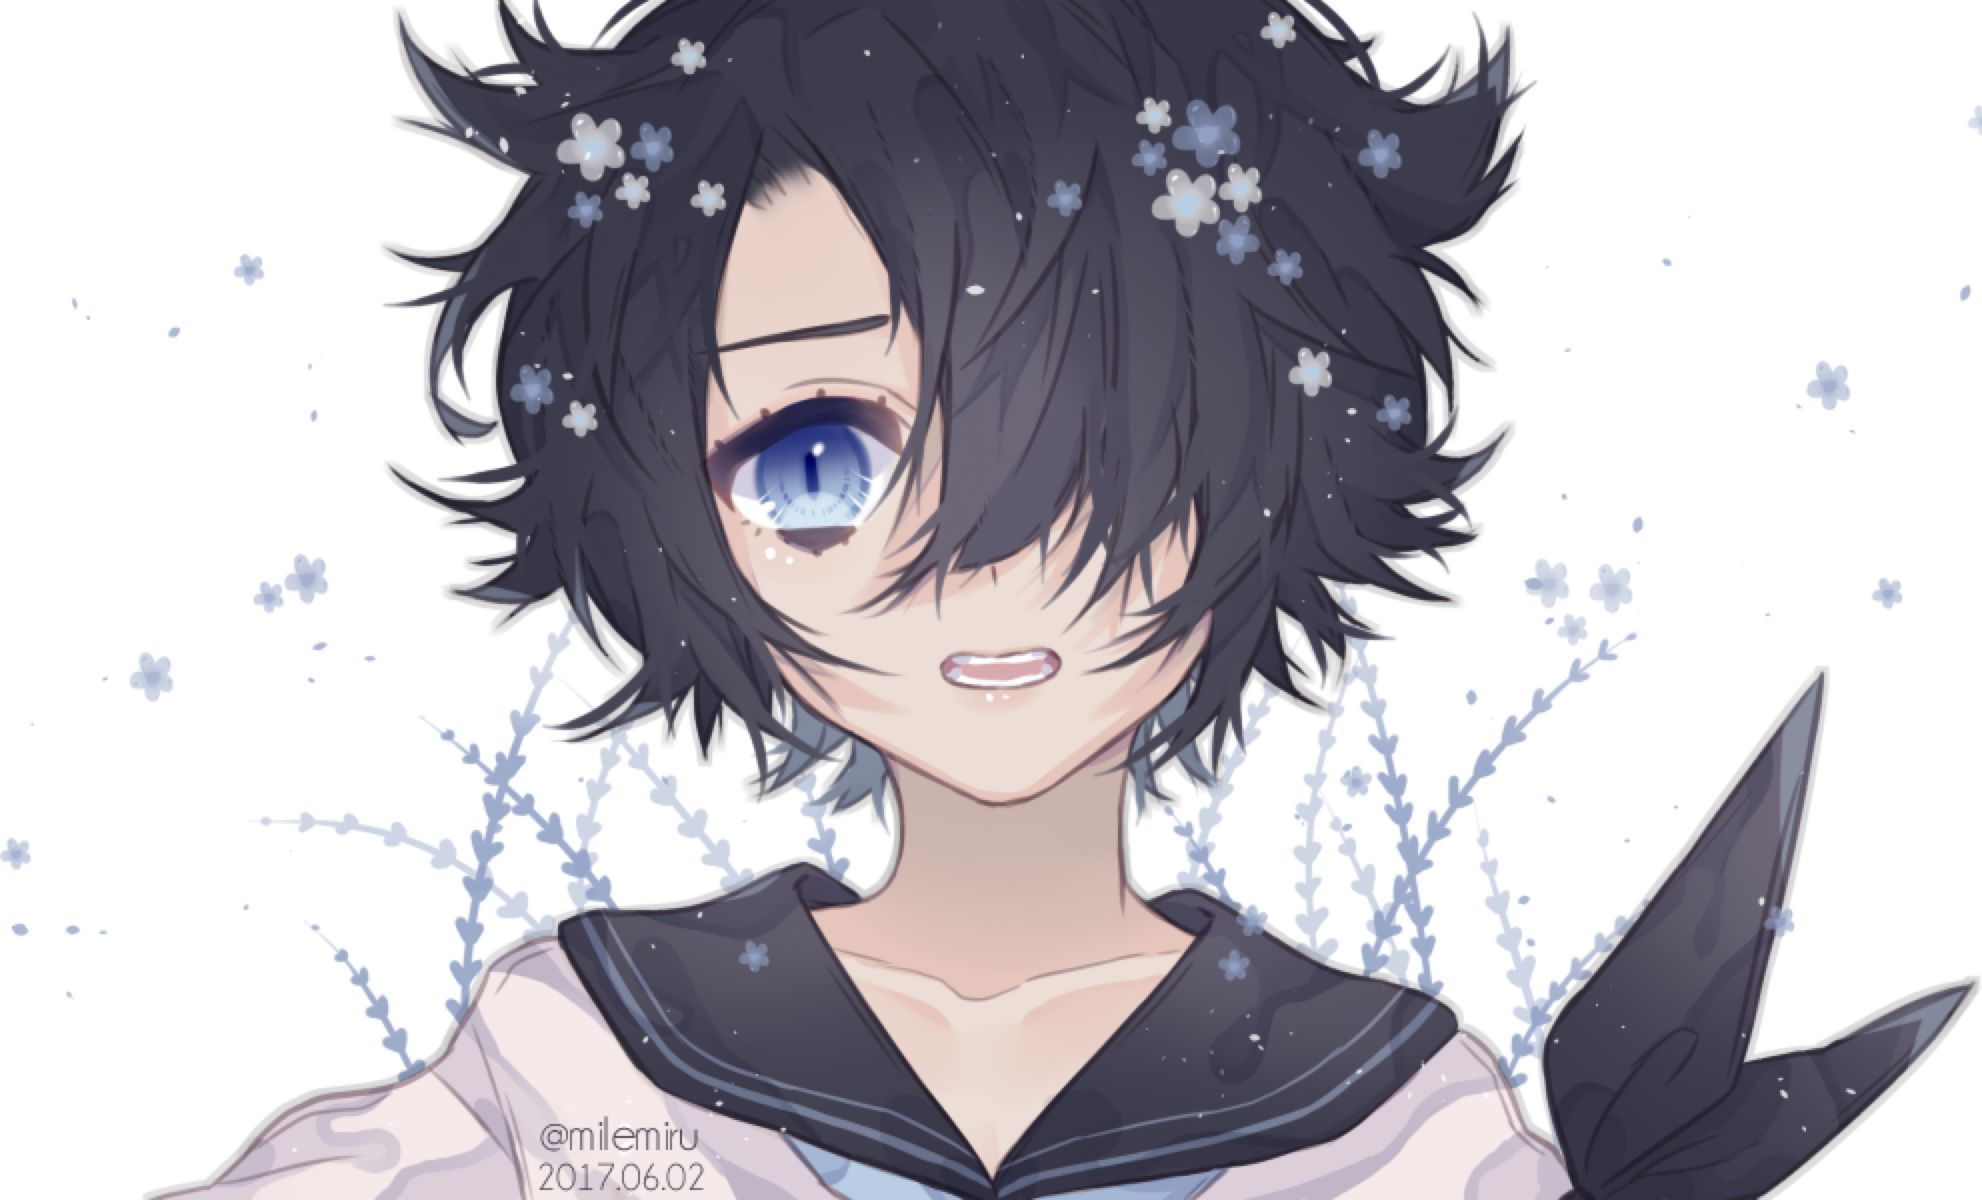 Forgotten Speedpaint By Milemiru On Deviantart Anime Art Girl Cute Anime Guys Kawaii Anime